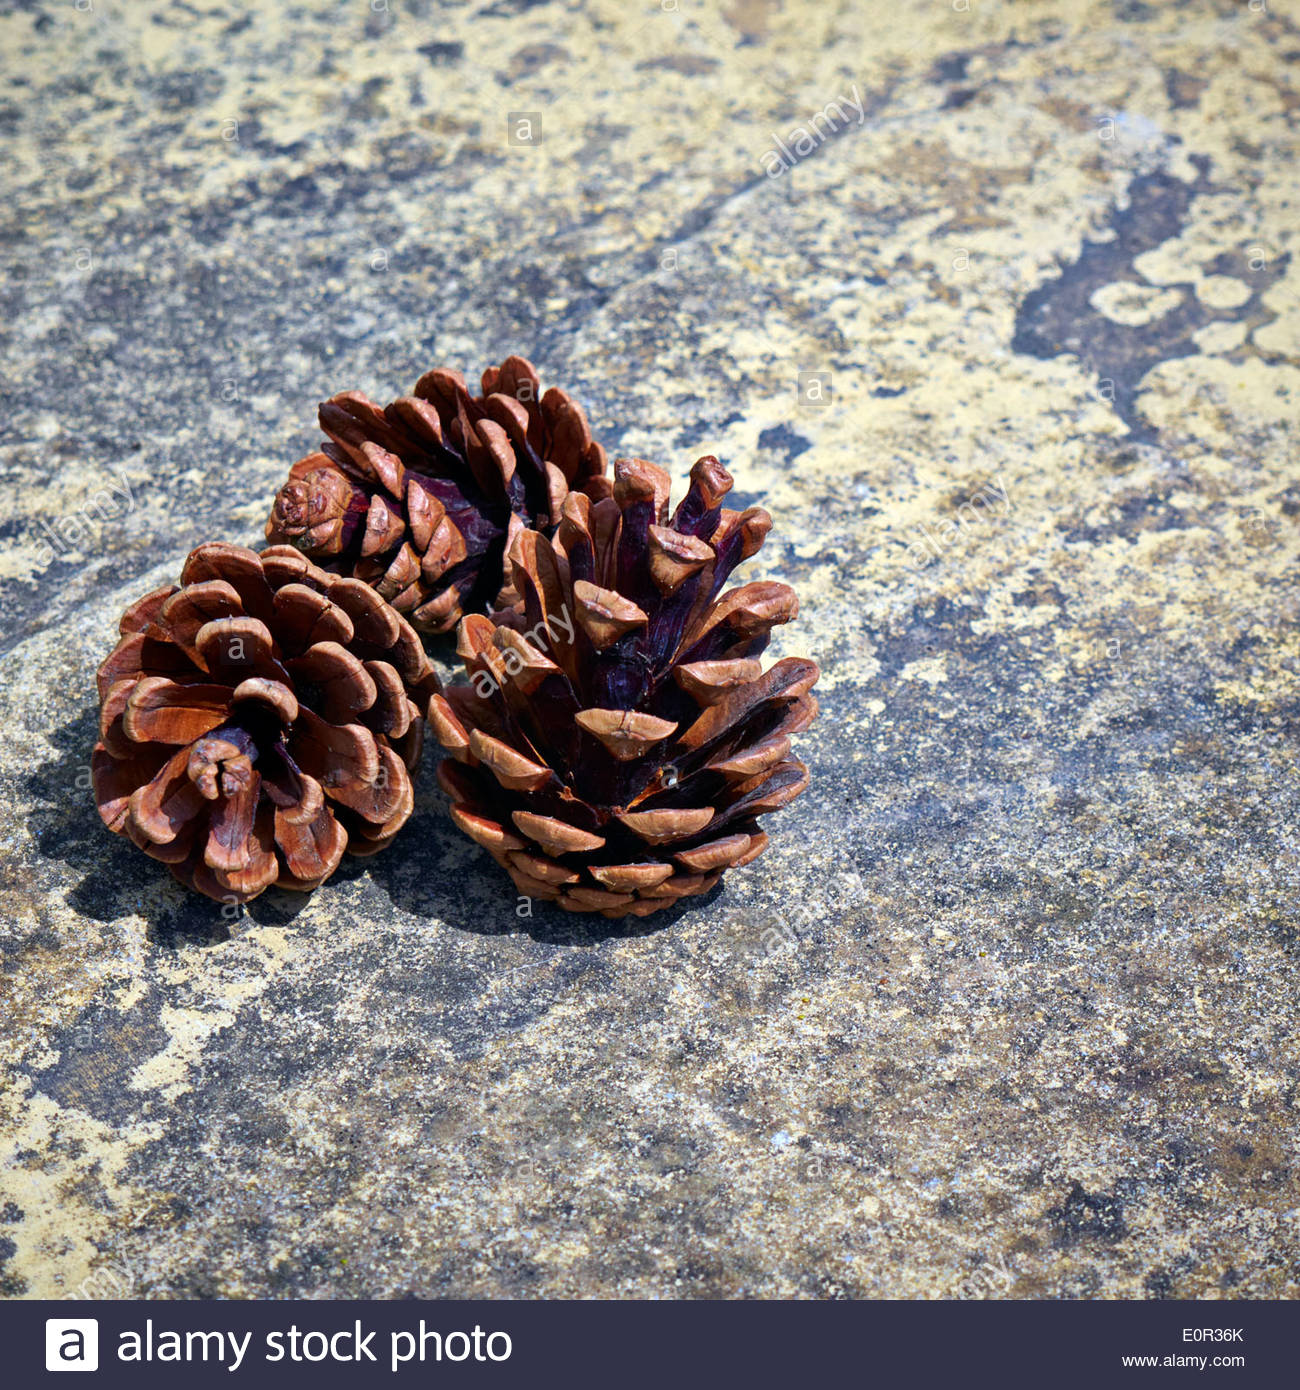 three small brown fir pine cones on a stone textured paving slab - Stock Image